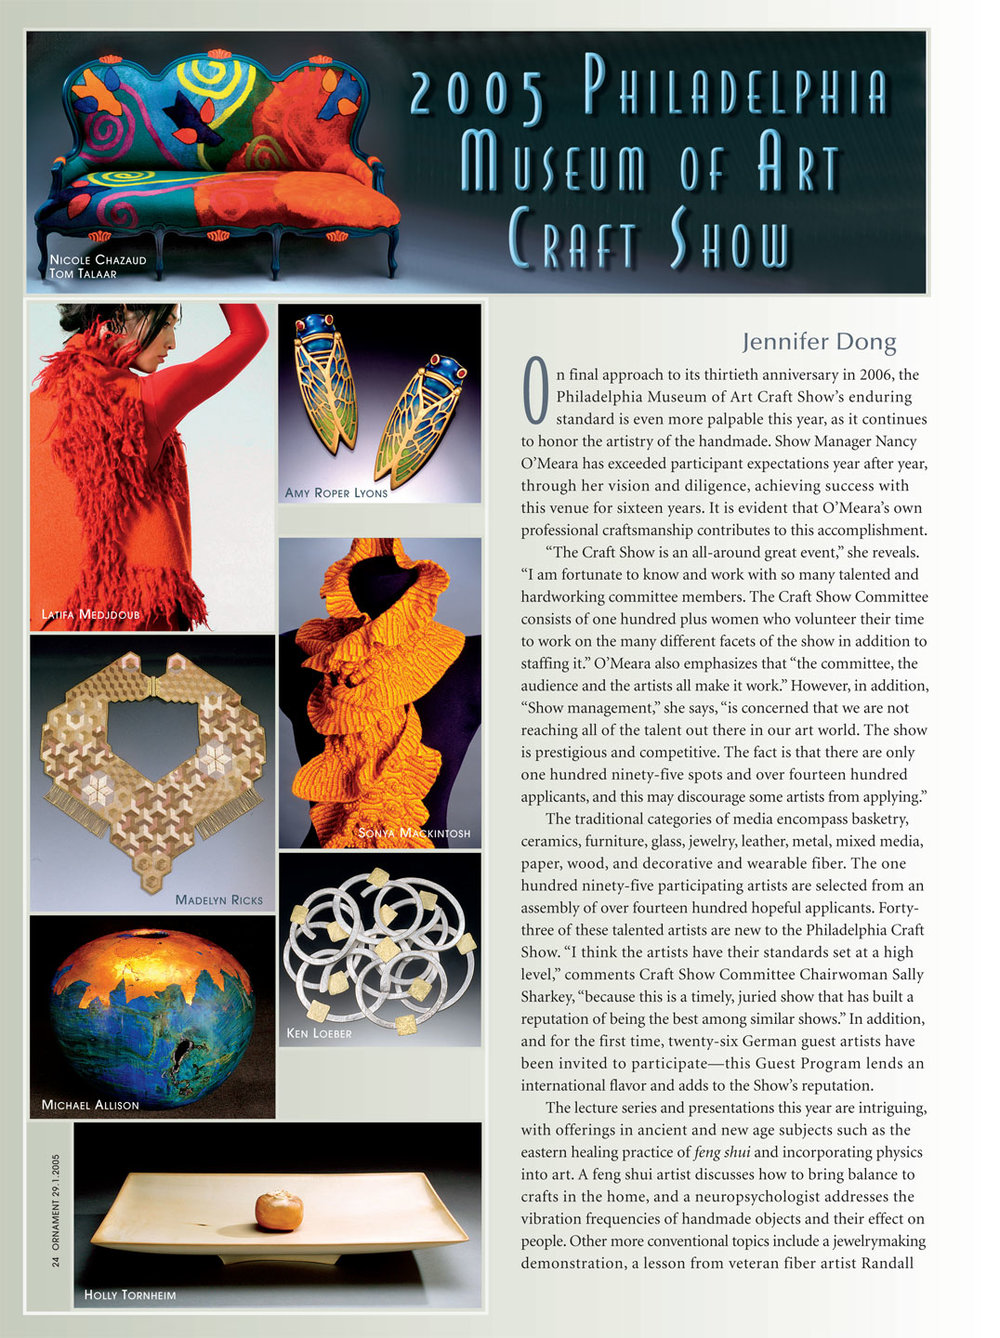 Orn29_1_Philadelphia_Craft_Show-Cover.jpg